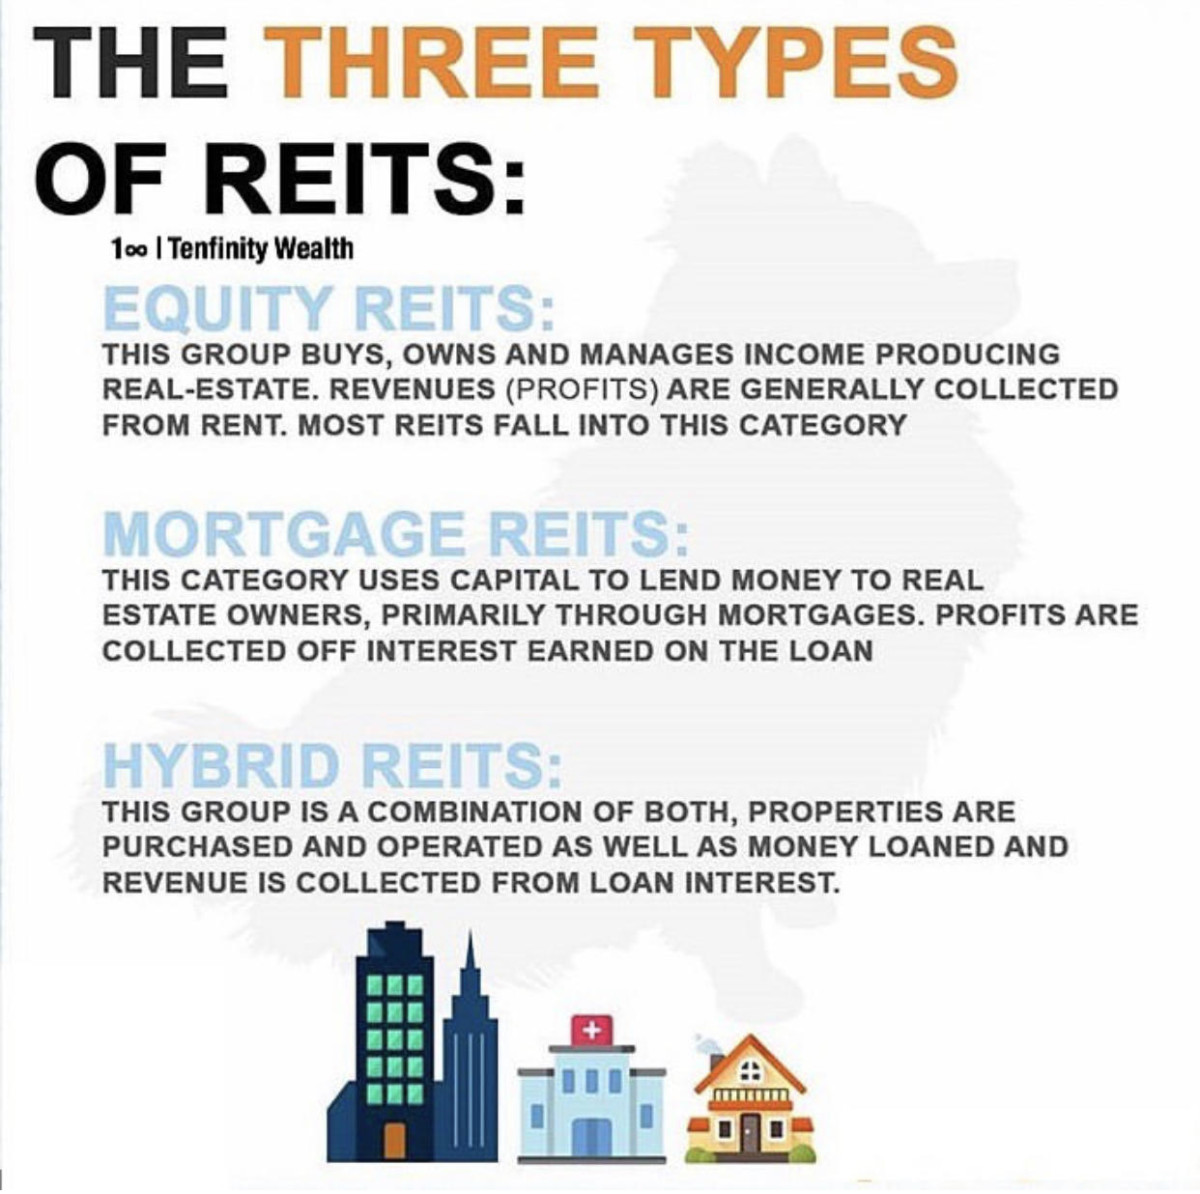 real estate investment trusts reits - Real Estate Investment Trusts (REITs)